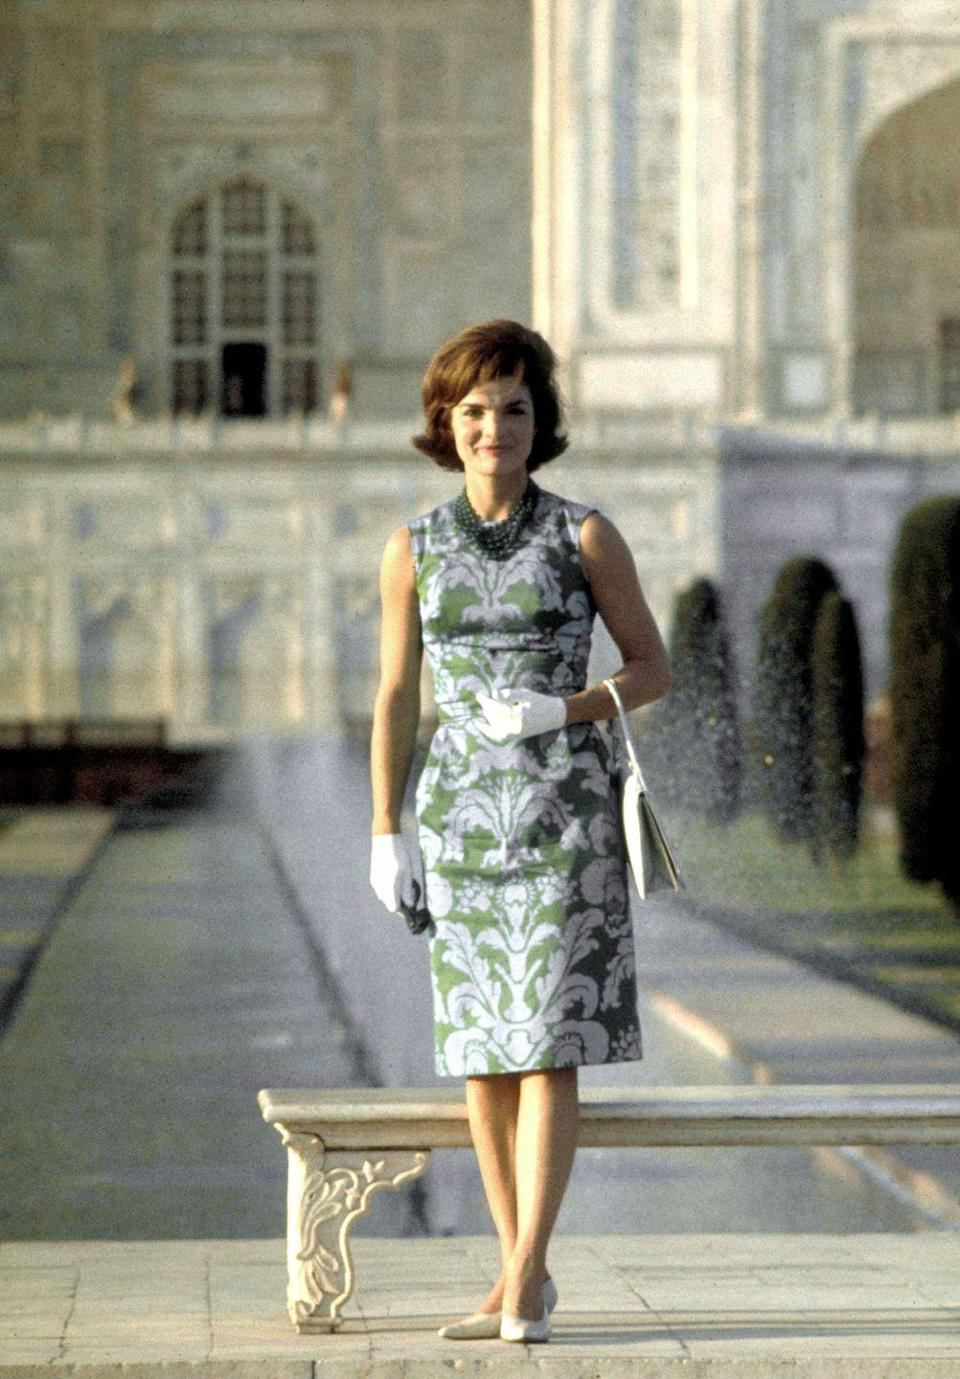 <p>Entering the '60s, it was all about the sheath dress, as seen here on Jacqueline Kennedy Onassis. This style could be worn with gloves for a formal look or dressed down for everyday life. </p>